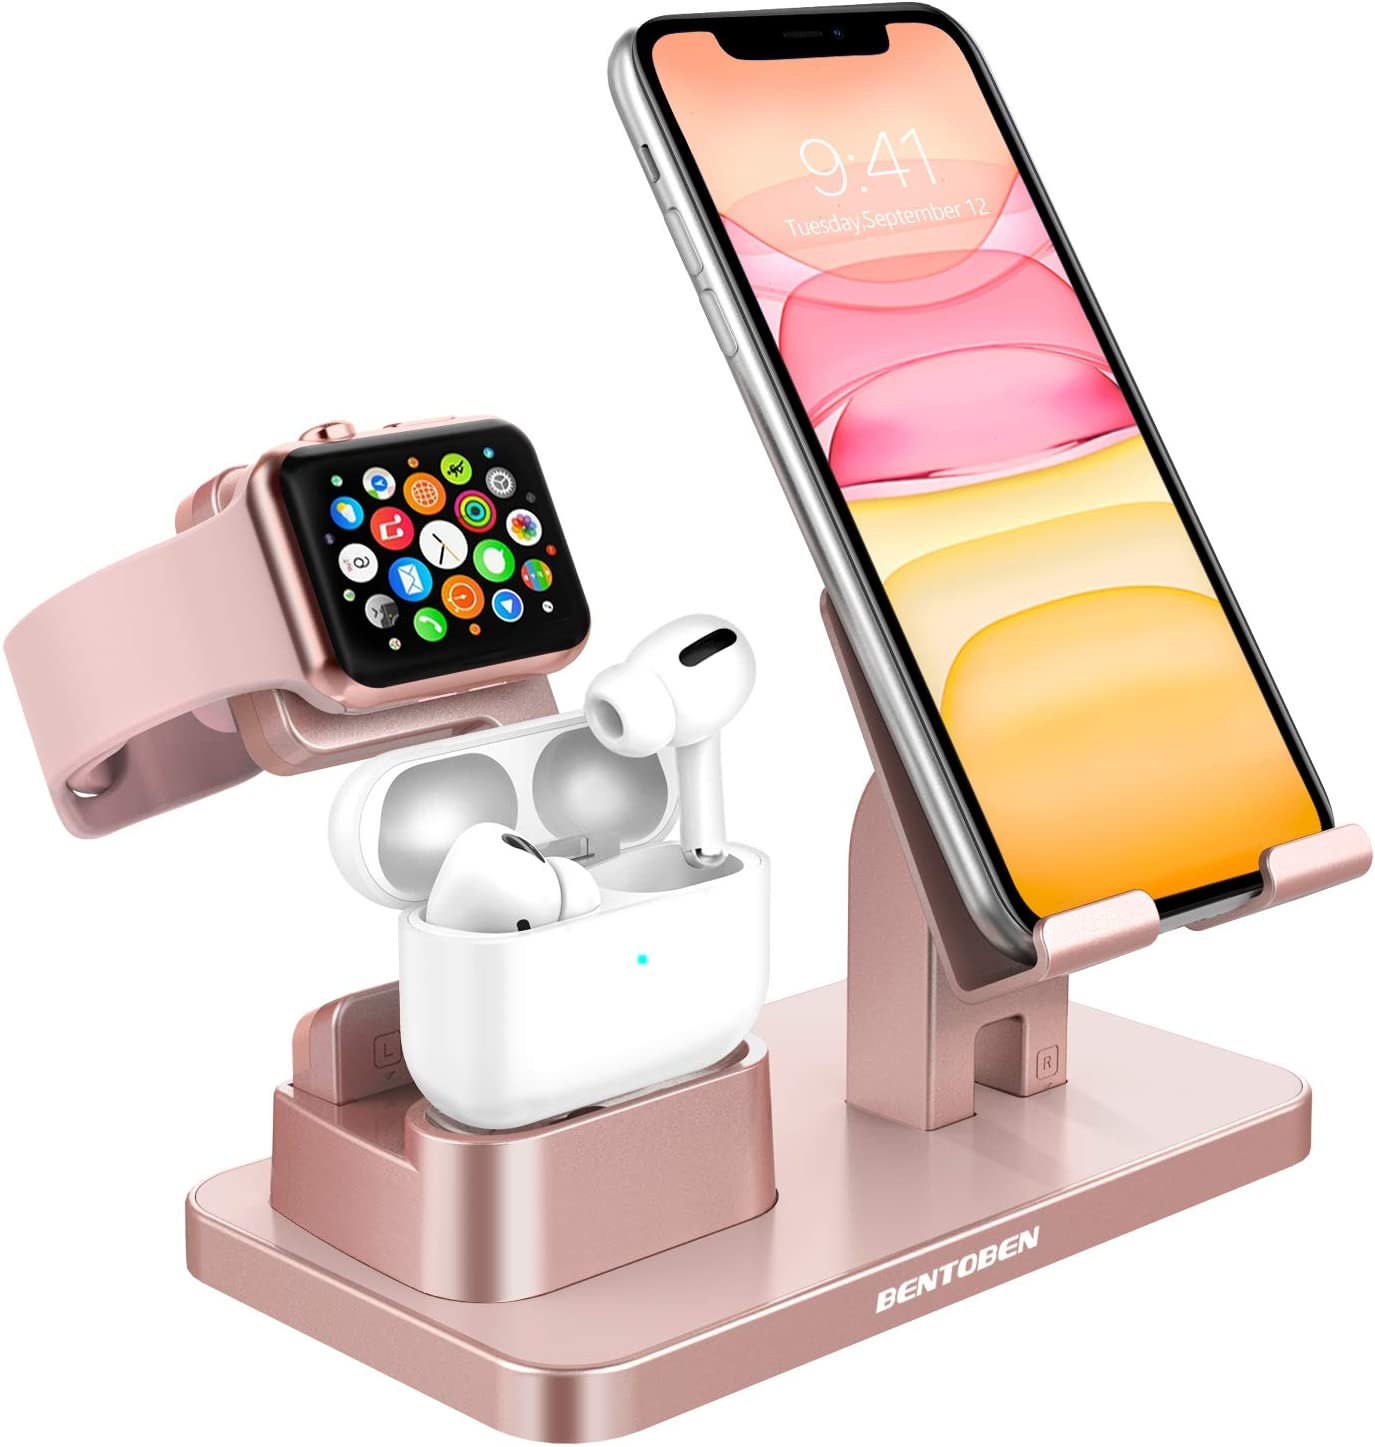 KANGYA 3 in 1 Charging Stand, Charging Dock Compatible with Airpods Pro 2/1 Apple Watch SE/6/5/4/3/2 iPhone 12 11 SE 2020 Xs Max XR X 8 7 6S 6 Plus 5S 5 Android Smartphone iPad Tablet, Rose Gold